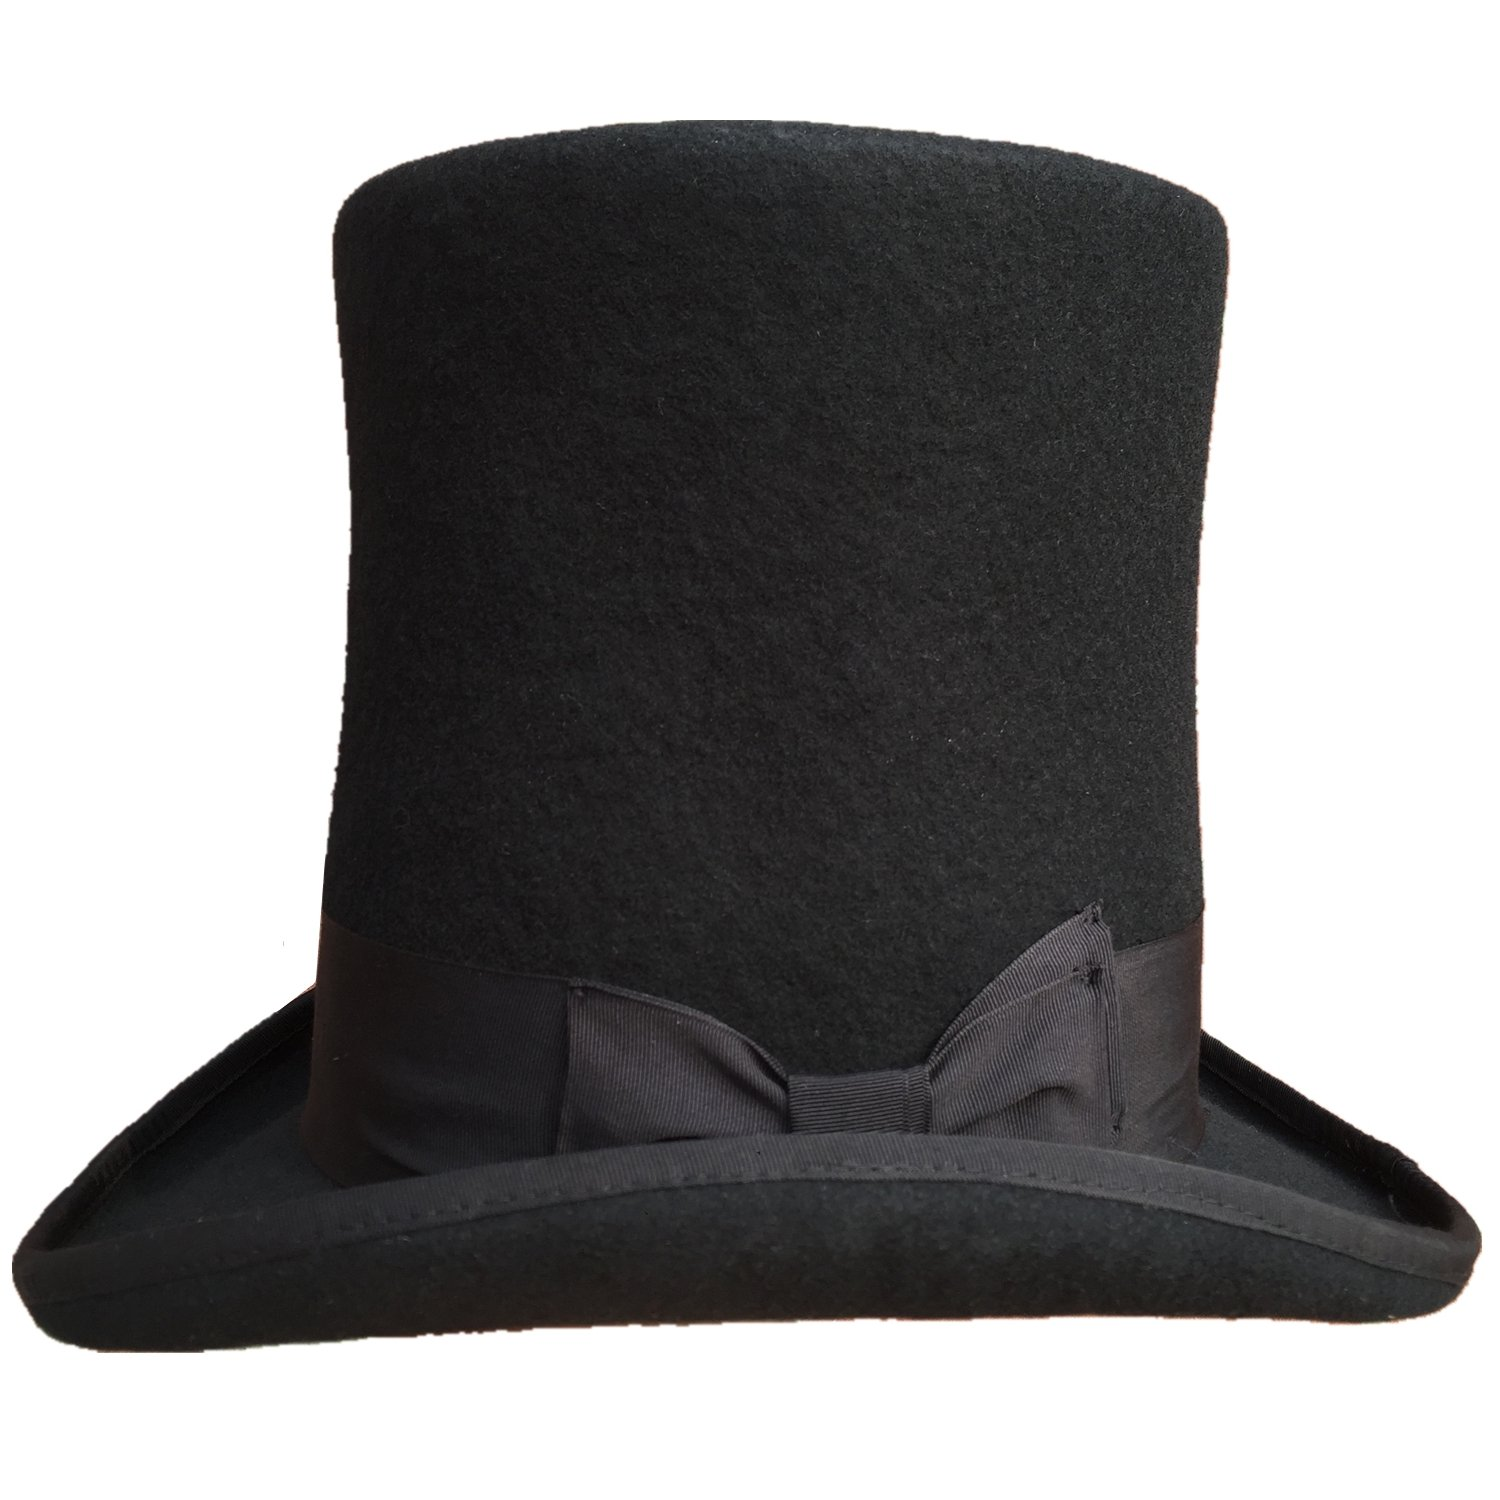 0410830a07d76 Amazon.com  Authentic Black Wool Felt Victorian Steampunk Extra Tall Top  Hats 9